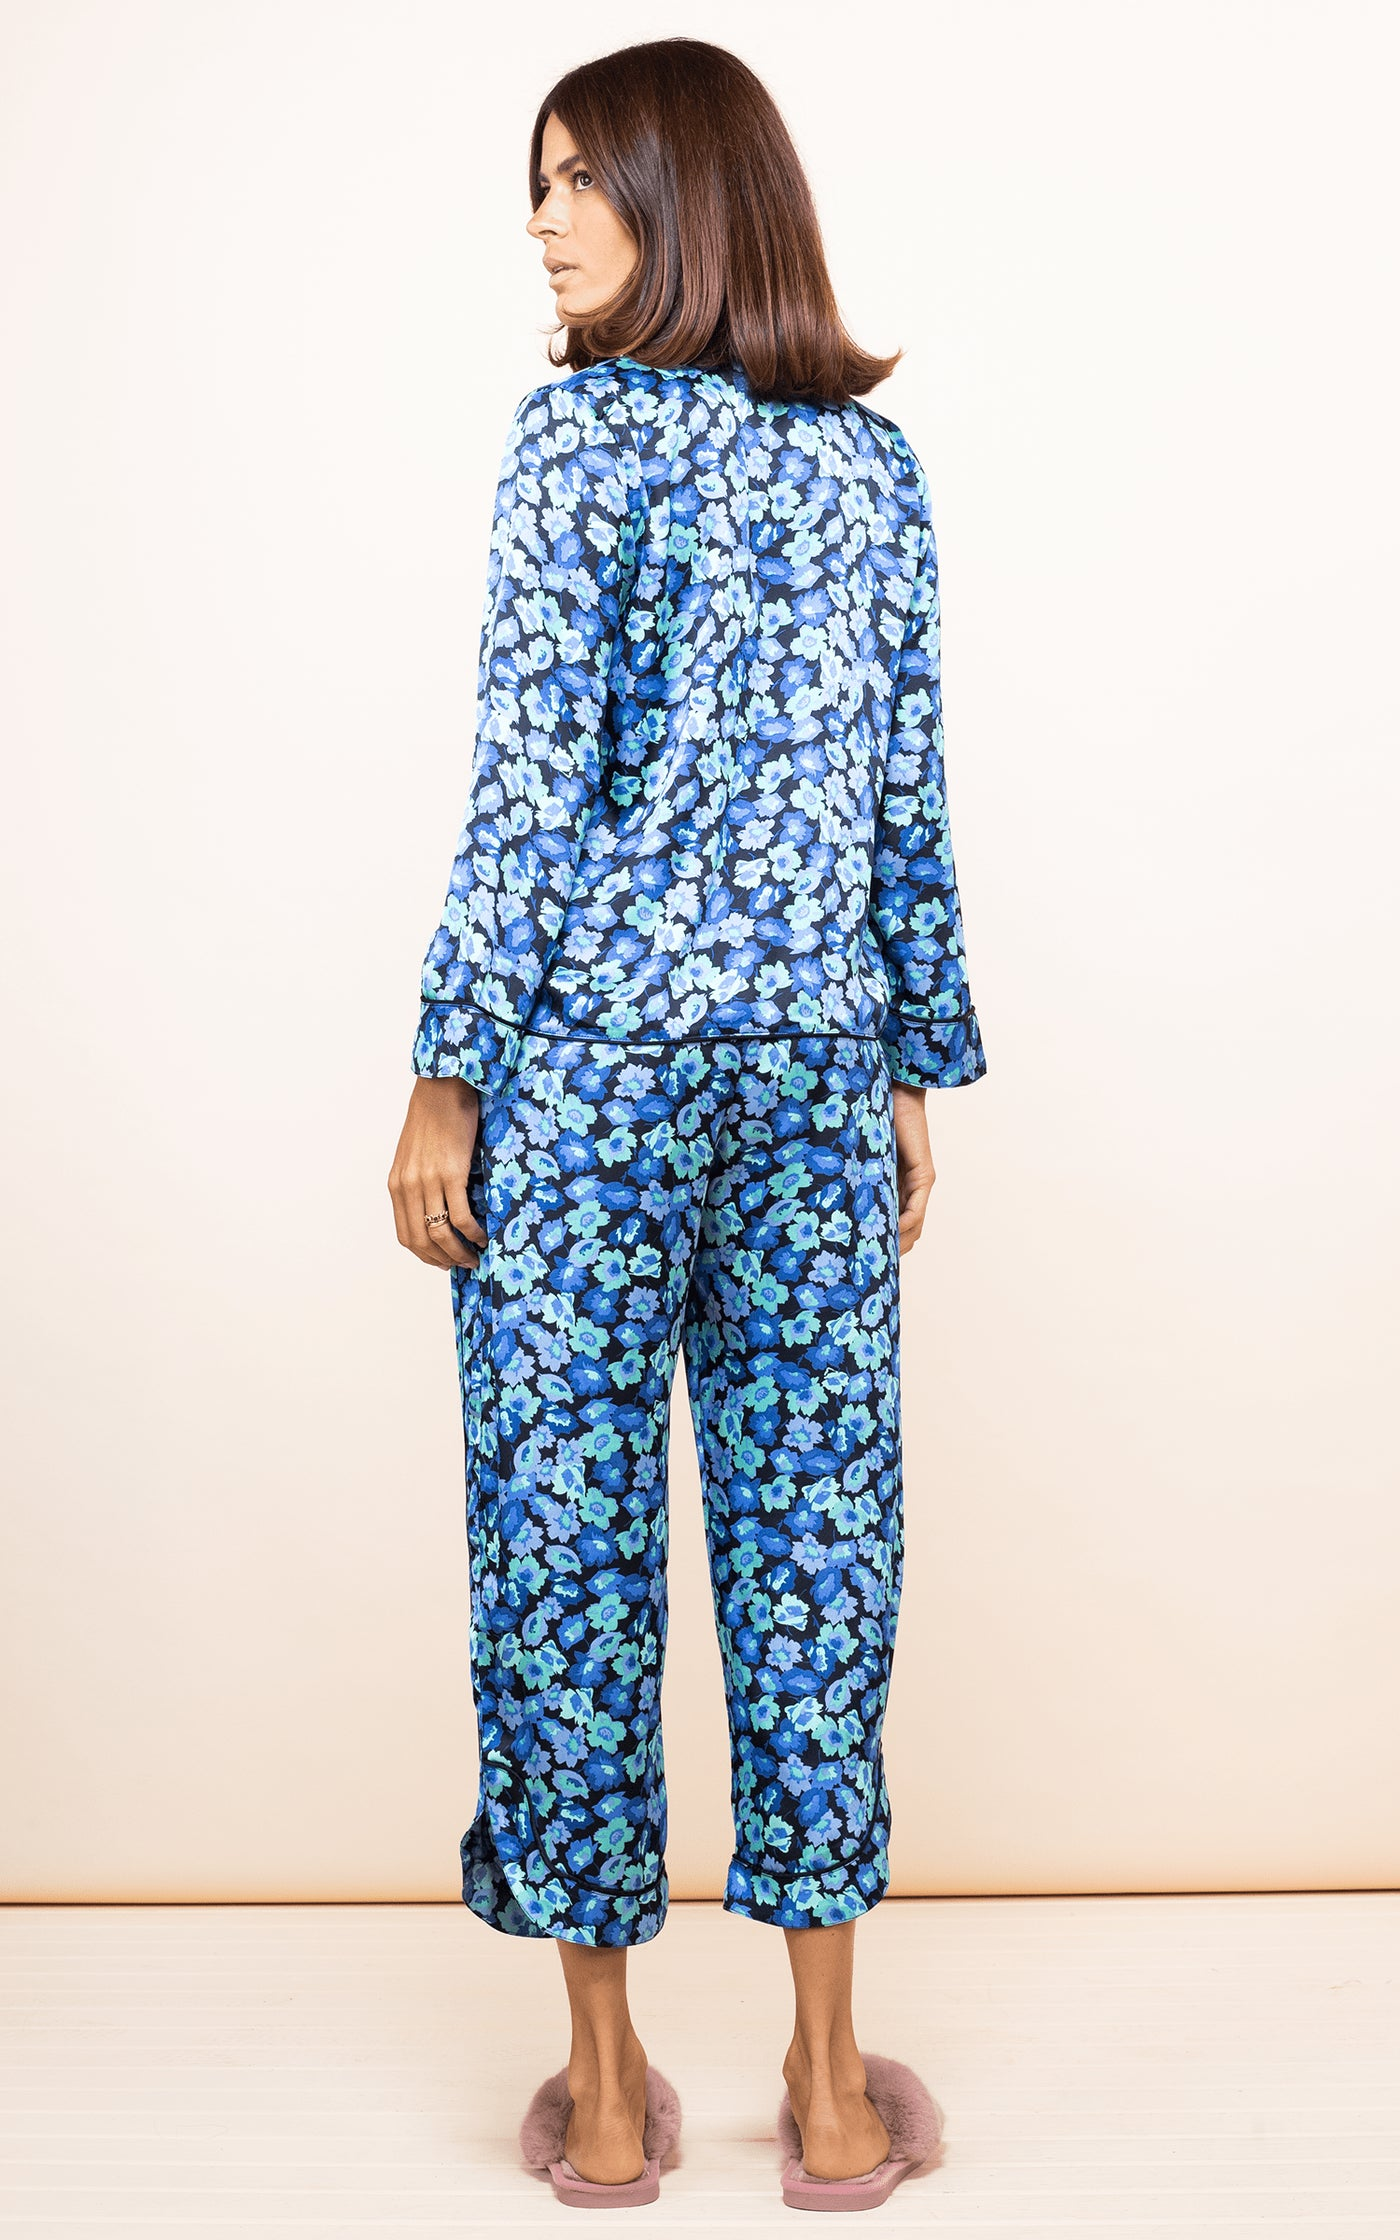 Dancing Leopard model faces backwards wearing Enya PJ Set in 50s-inspired blue floral print with slippers